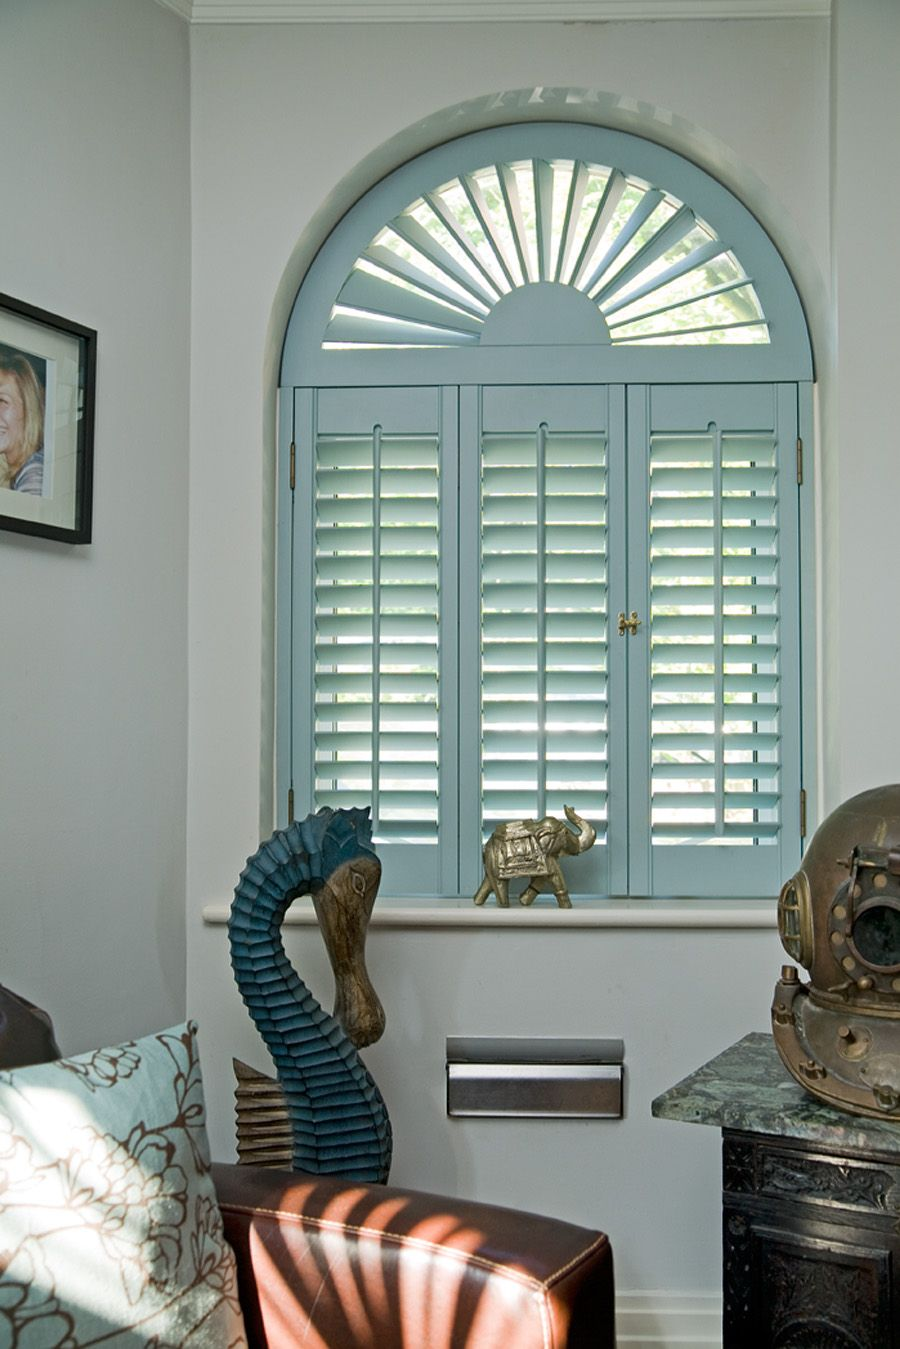 Indoor plantation shutters interior shutters wood shutters plantation shutter shutter images for Window shutters interior prices